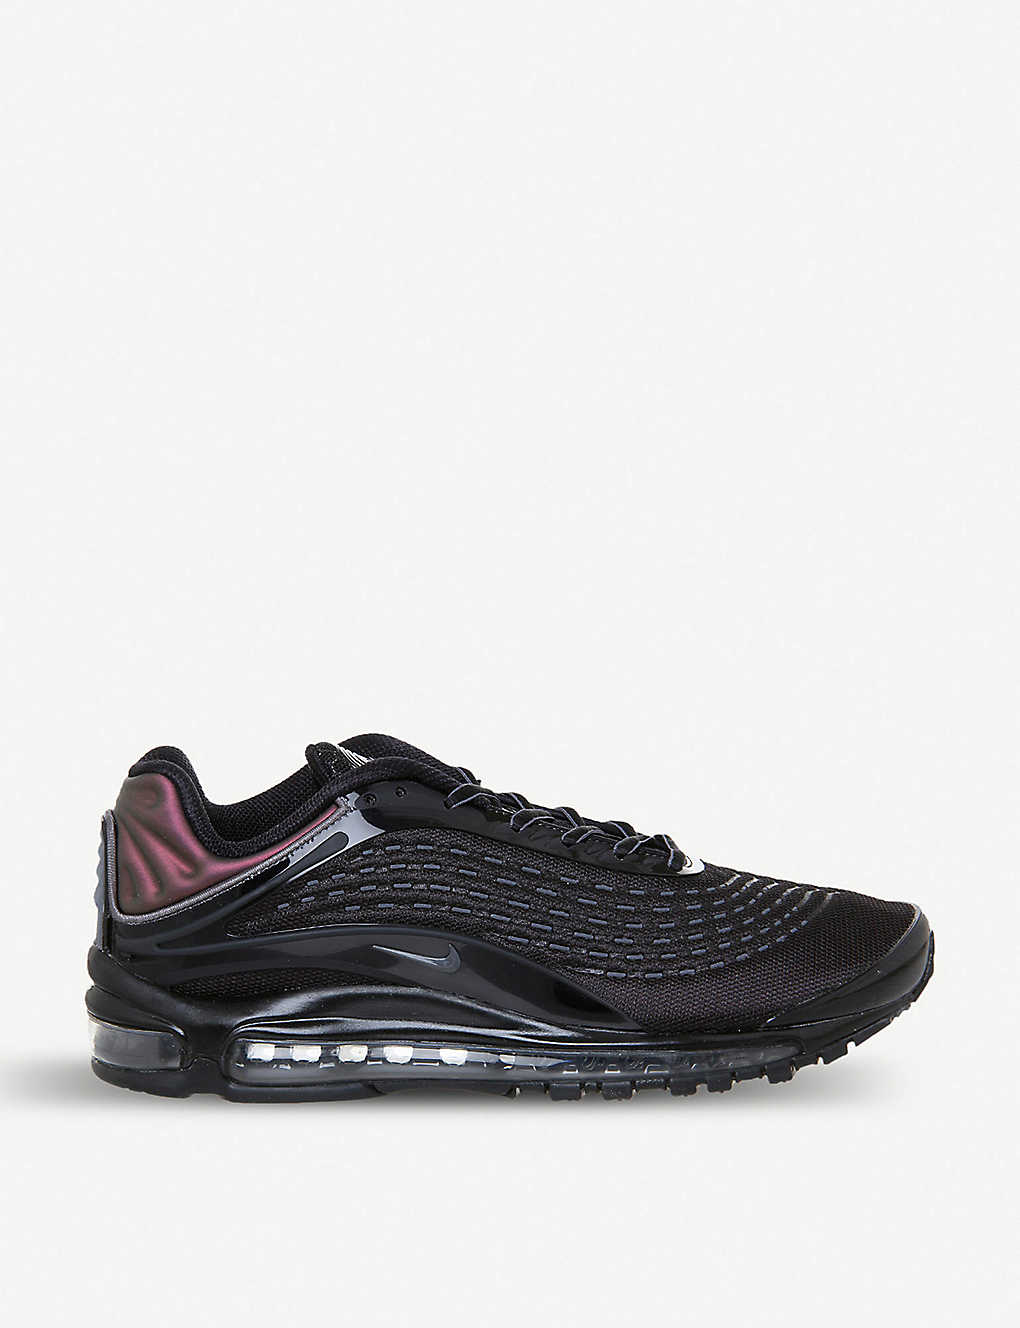 Air Max Deluxe neoprene trainers